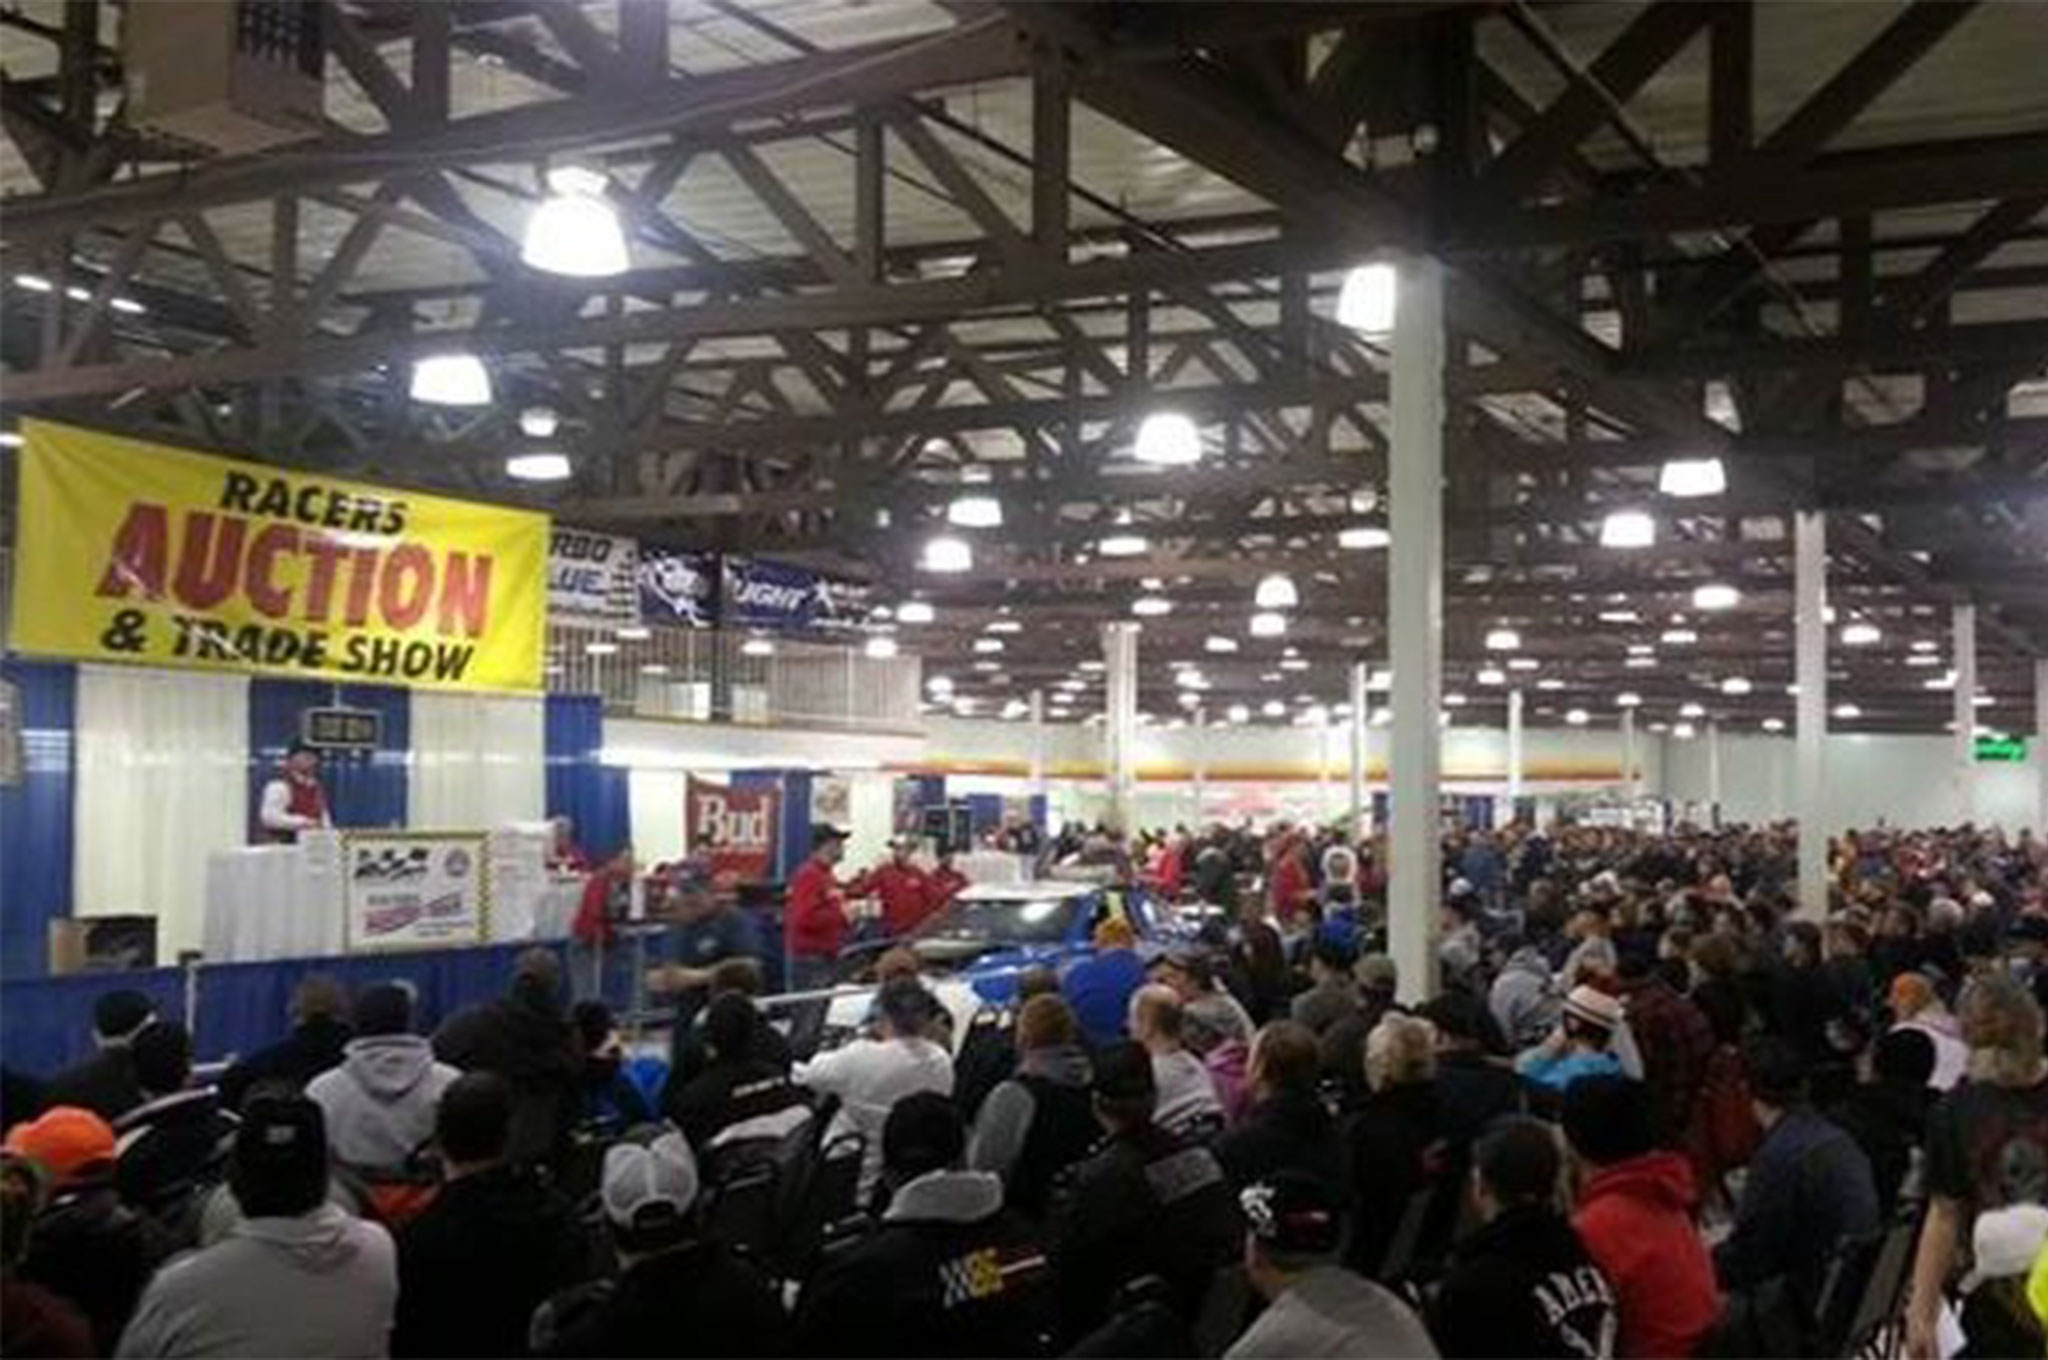 There are some good regional shows like the Midwest Racers' Auction and Expo. These shows give you a better chance to run into people you know, and maybe a chance to bend the ear of your promoter.